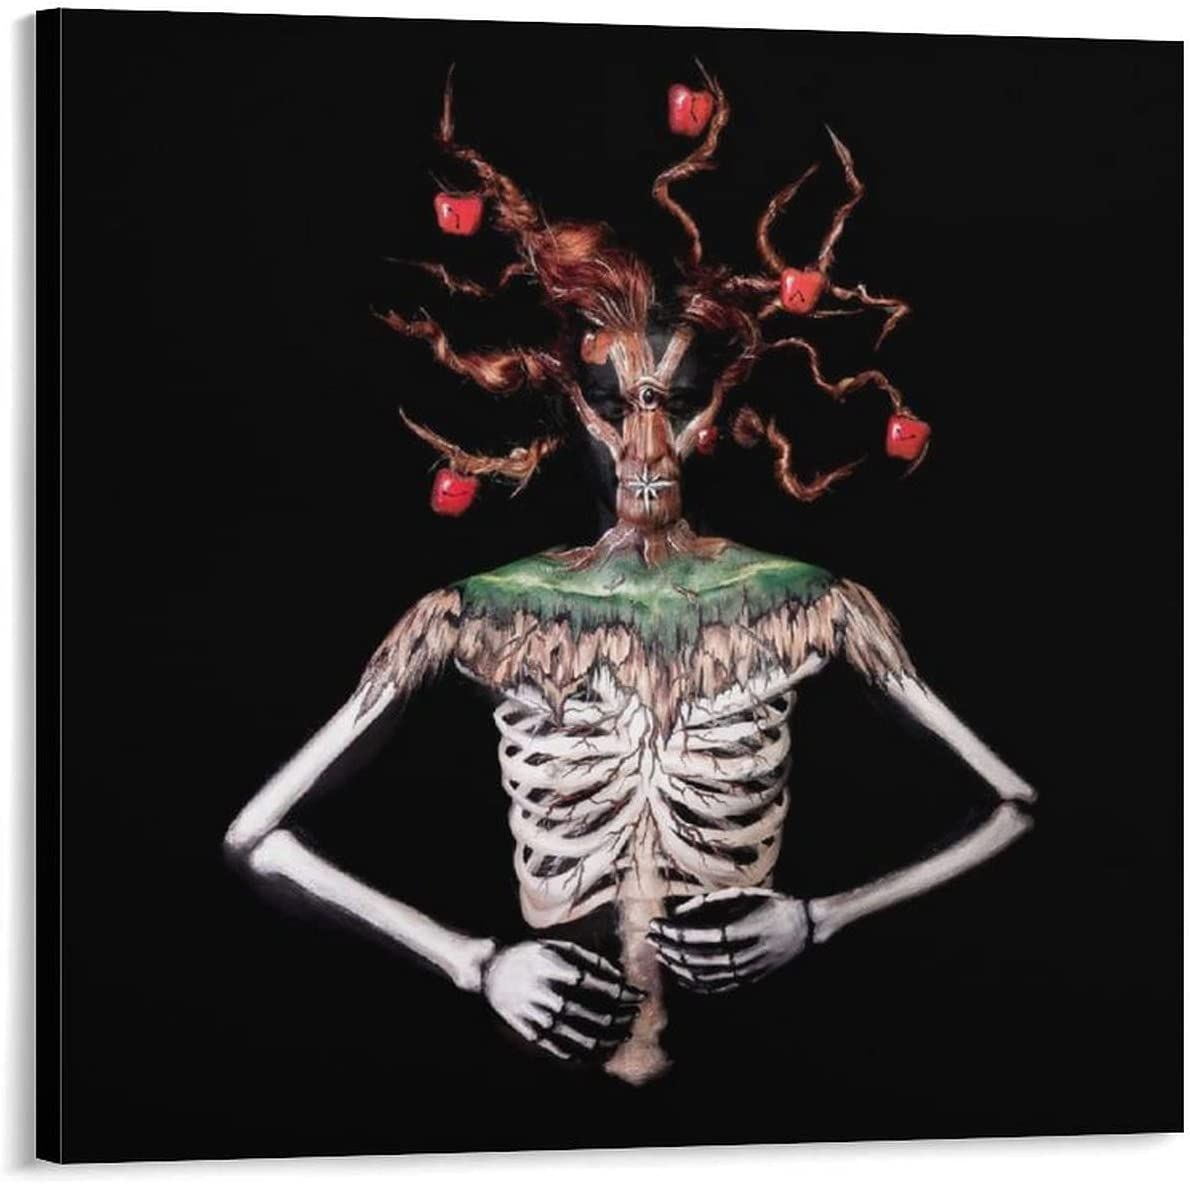 YuFeng_Art_Inn Picture Frames Body Art and Animal Bones Room Decor Wall Decor Paintings Canvas Art Poster and Wall Art Picture Print Modern Family Bedroom Decor Posters 24×24inch(60×60cm)